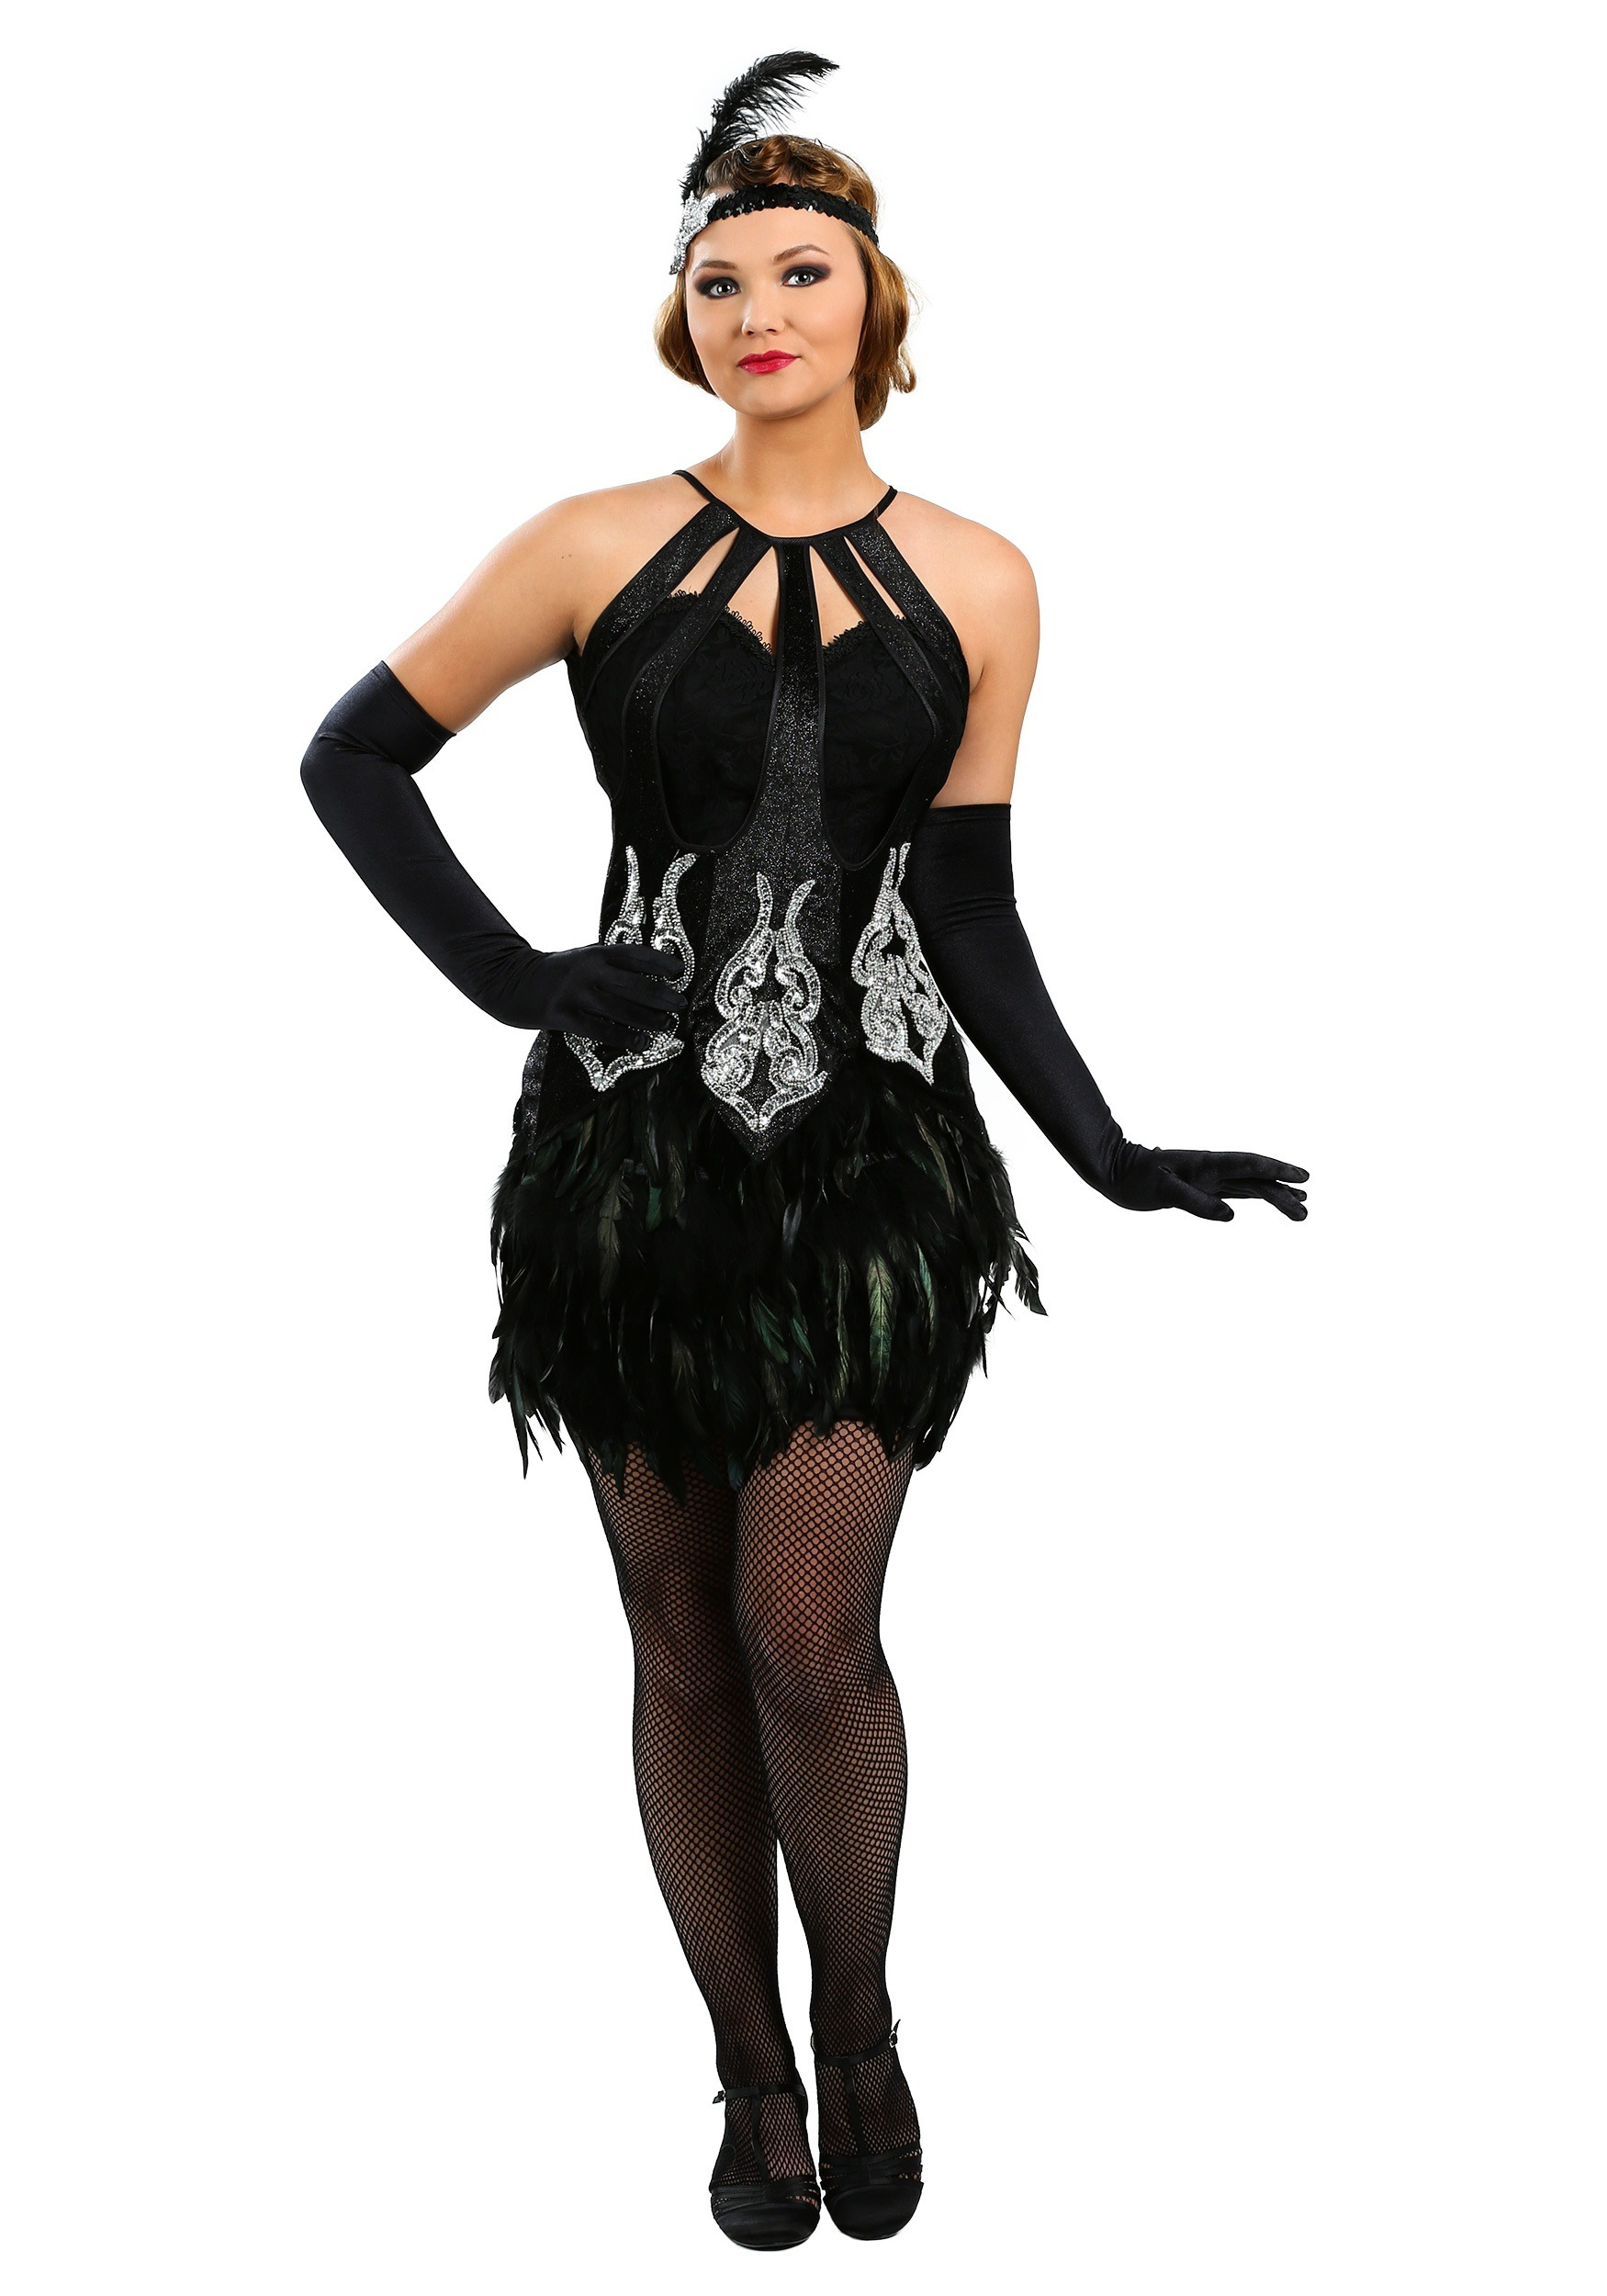 Women's Feathered Showgirl Costume